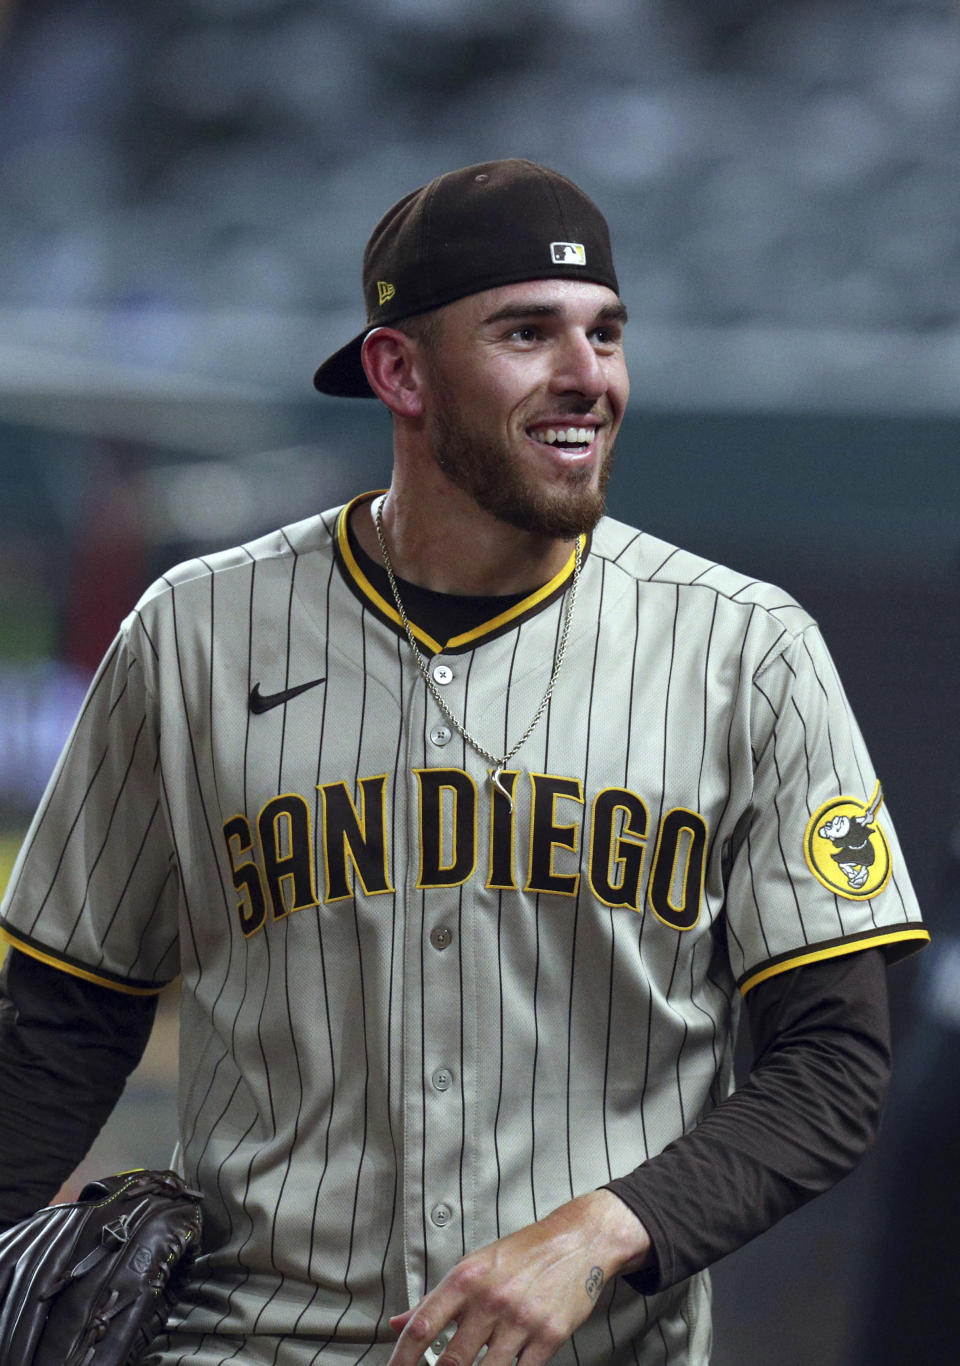 San Diego Padres starting pitcher Joe Musgrove smiles while looking to fans in the stands after pitching a no-hitter against the Texas Rangers in a baseball game Friday, April 9, 2021, in Arlington, Texas. (AP Photo/Richard W. Rodriguez)